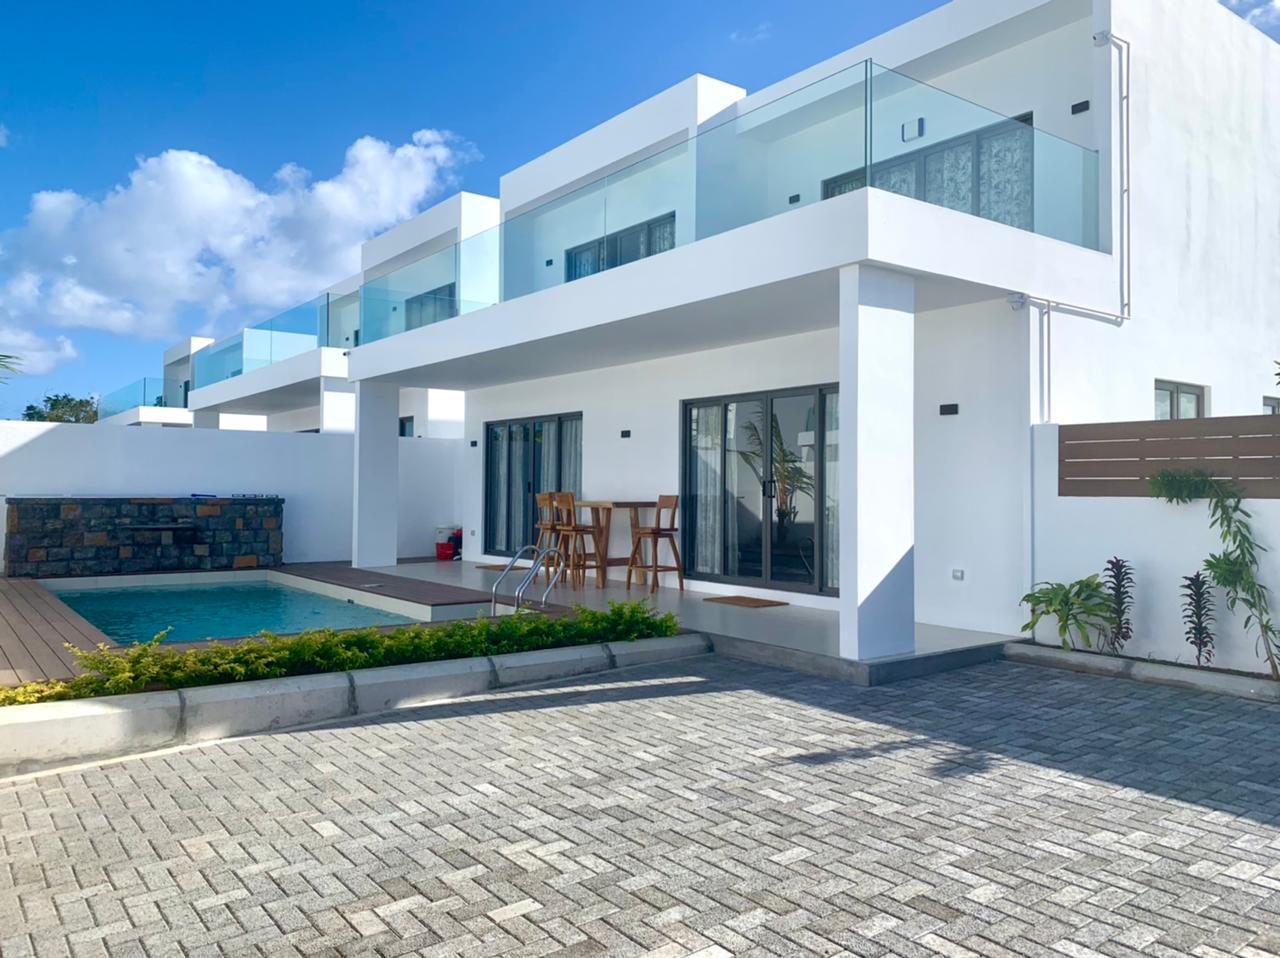 TO RENT – Sumptuous furnishedand equippedcontemporary house of 270 m2 on a land of422 m2 is locatedinthe highly residential area of Mont Mascal, Cap Malheureux.